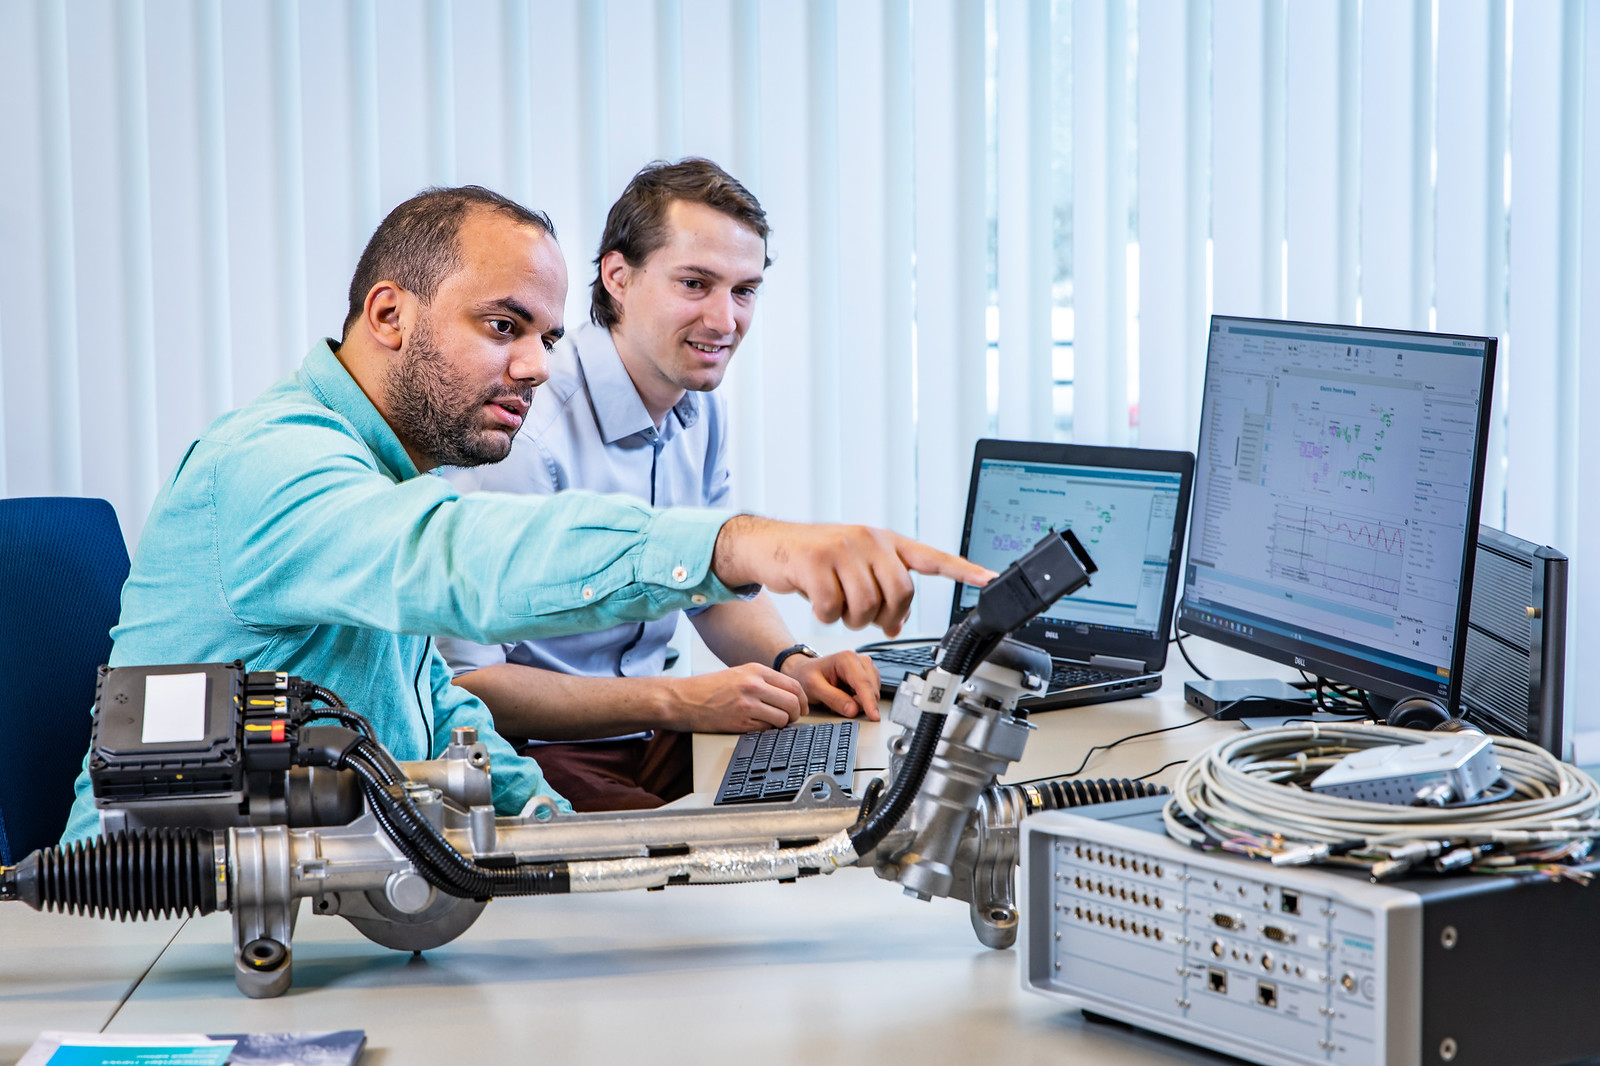 two engineers work at a desk performing the blend of test and simulation that is called model-based system testing